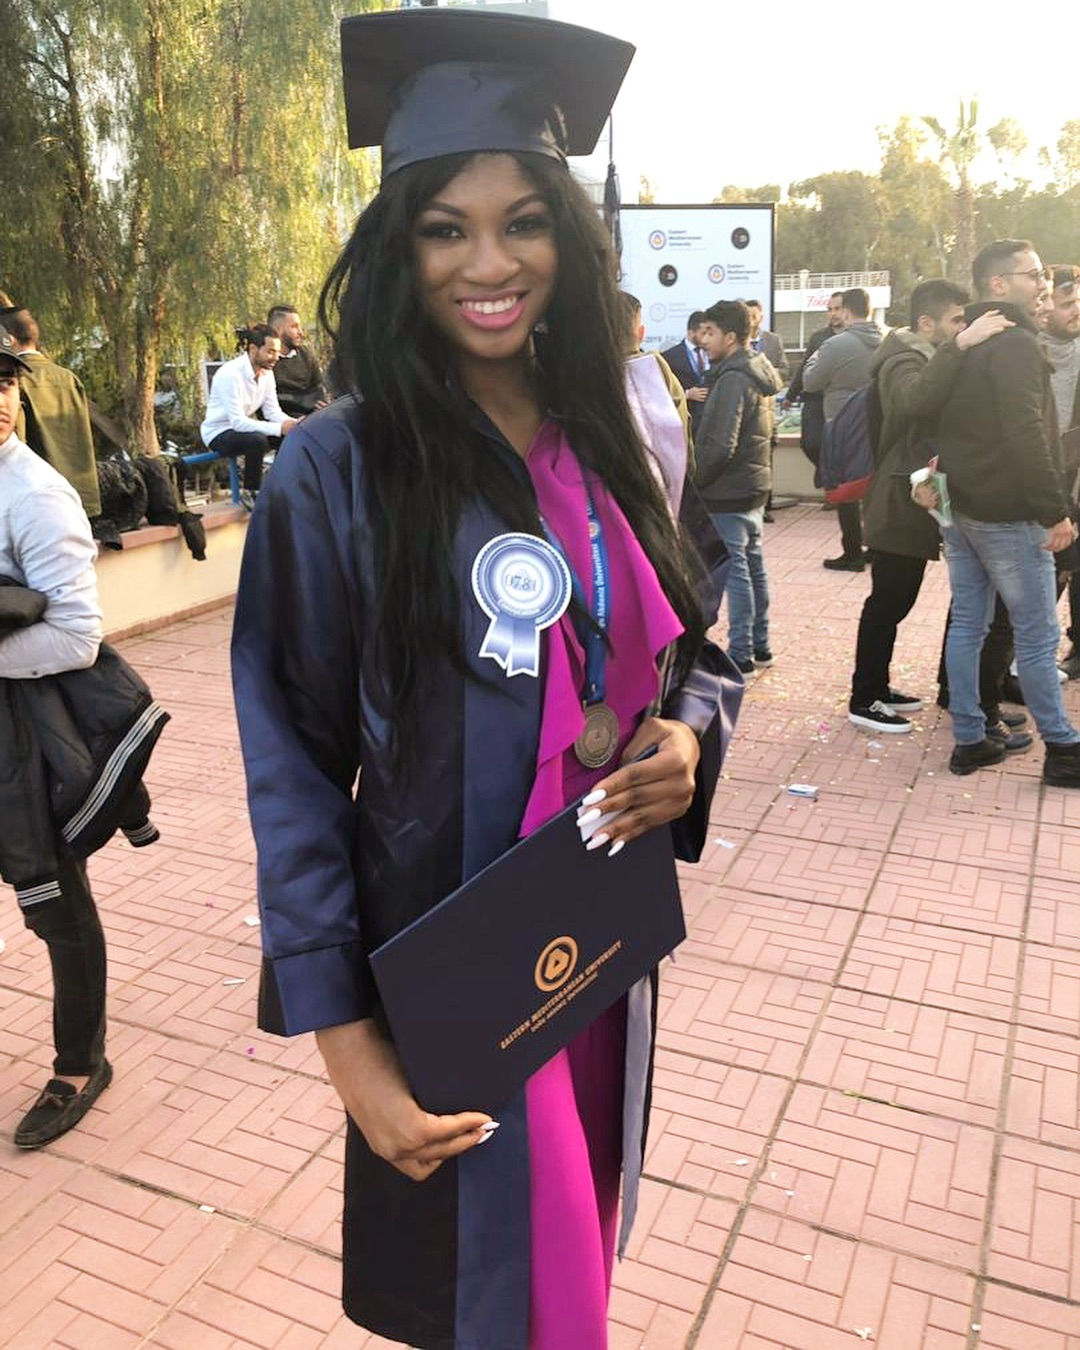 d9a6a91d176576dc62673f753084879a - Omotola Jalade-Ekeinde can't keep calm as daughter bags 2 degrees at 19